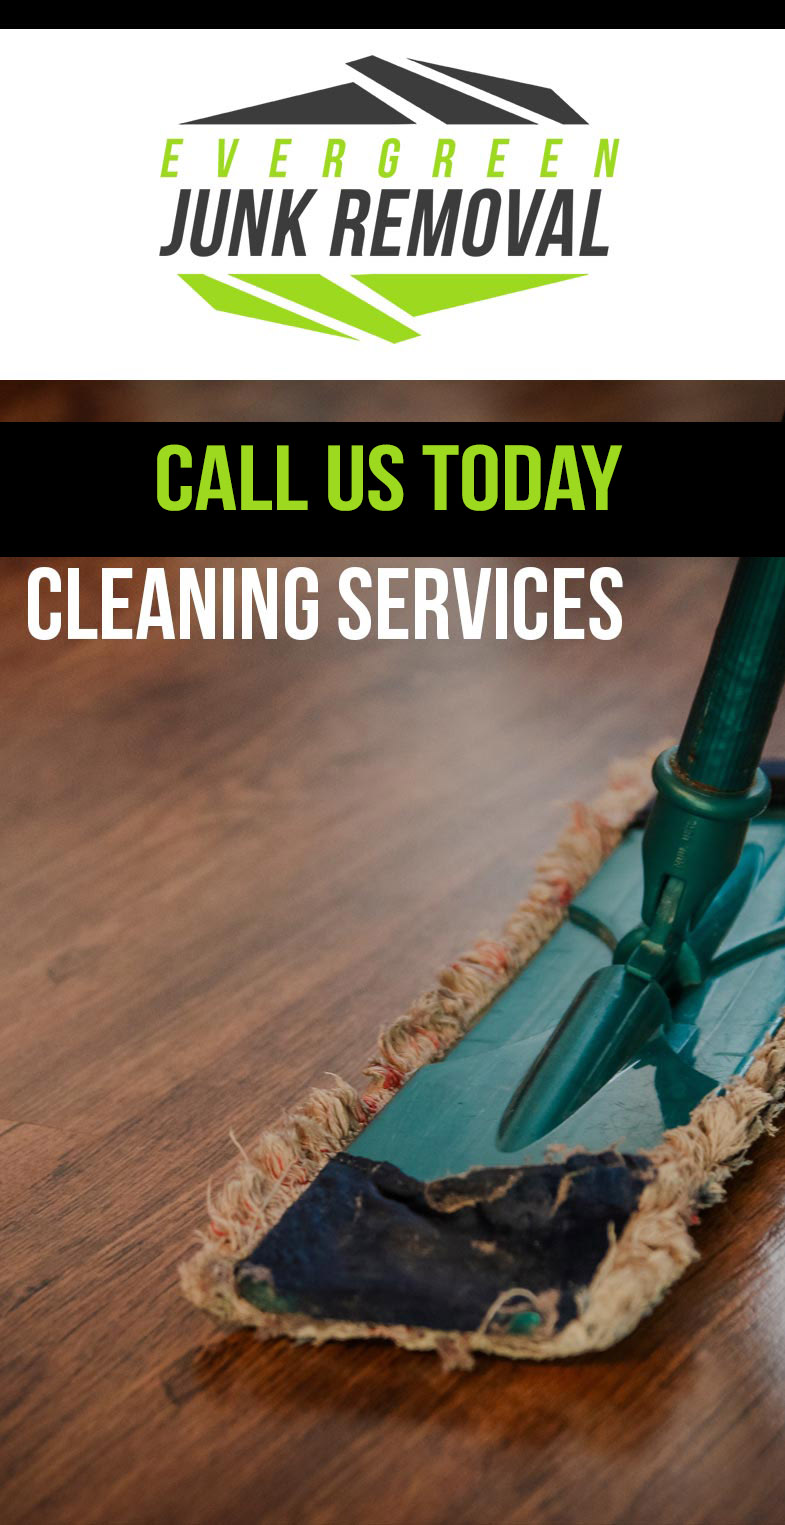 Cooper City Office Cleaning Services